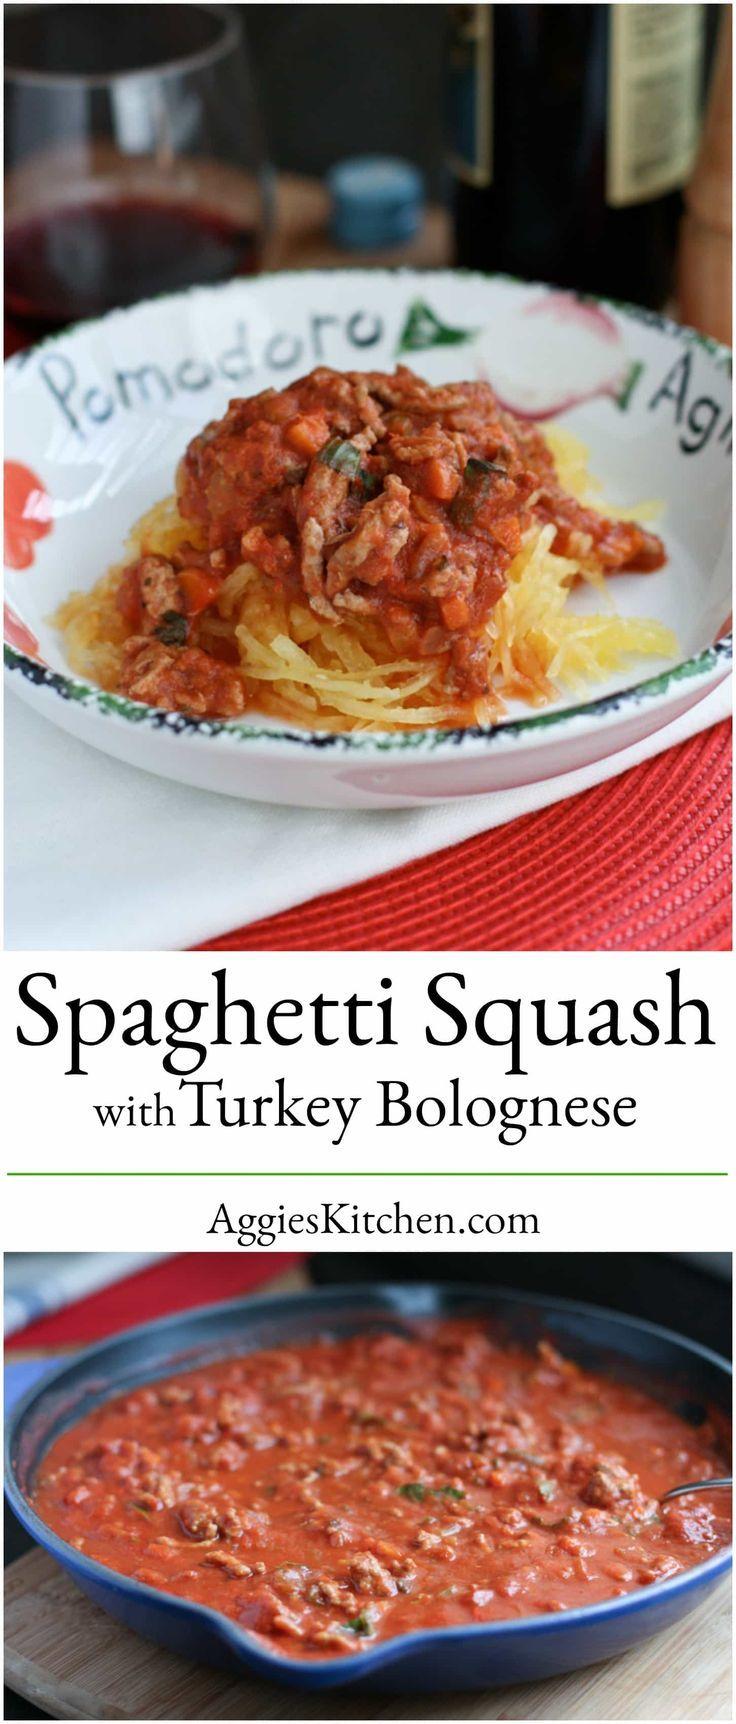 Spaghetti Squash with Turkey Bolognese from Skinnytaste is hearty, light and delicious and will be loved by everyone at your table. via @aggieskitchen